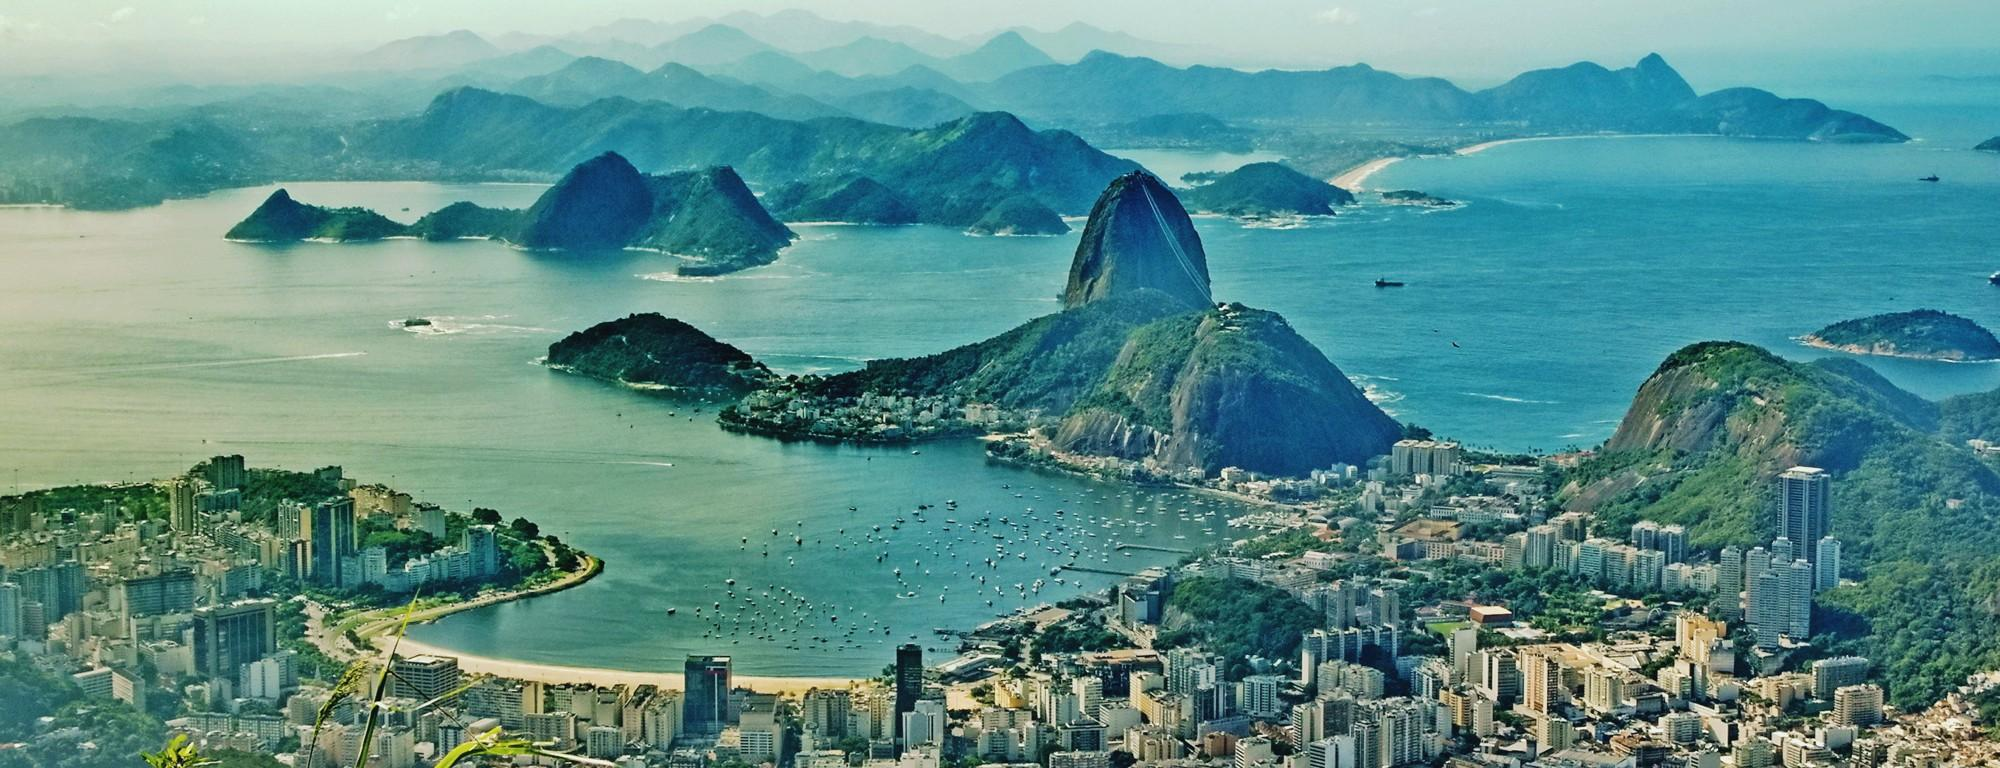 Brazil wallpapers HD quality